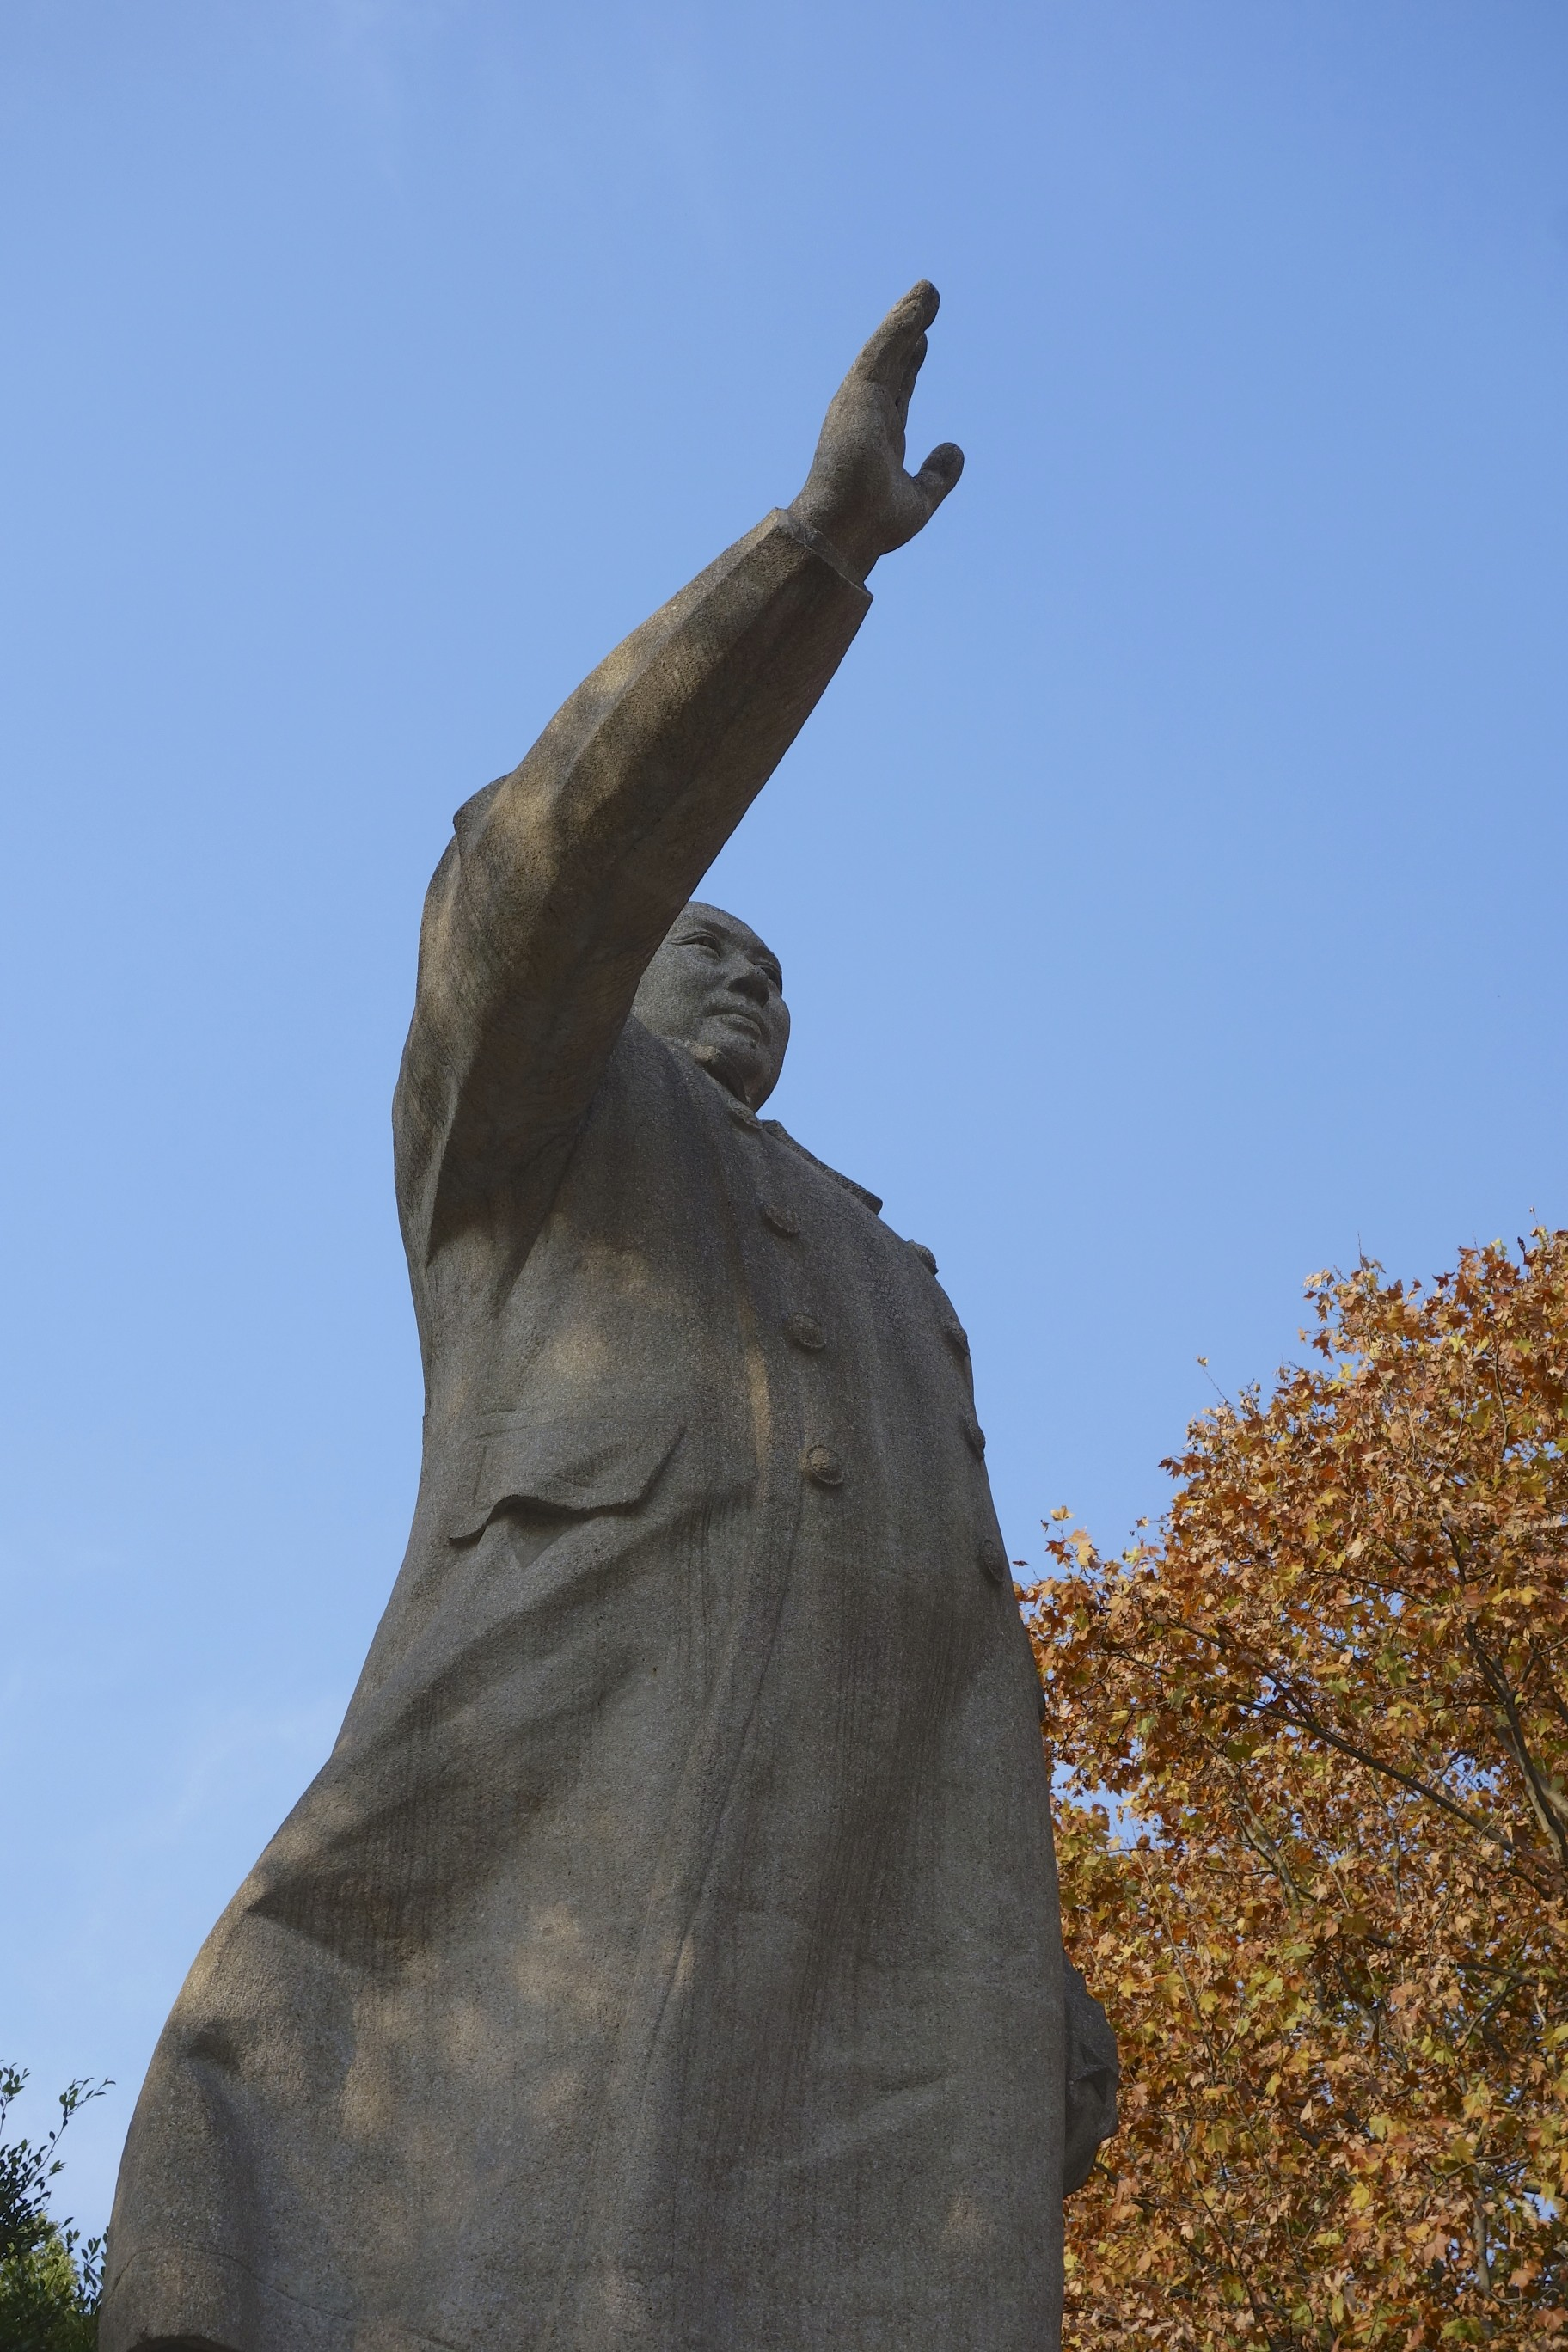 Chairman Mao hailing on campus. He is not really known as somebody who cherished academic work, sharing of knowledge and a fair debate. So a University campus would be the last place you might expect his statue. But he is still around. I guess moving these monuments needs more than just a bulldozer.